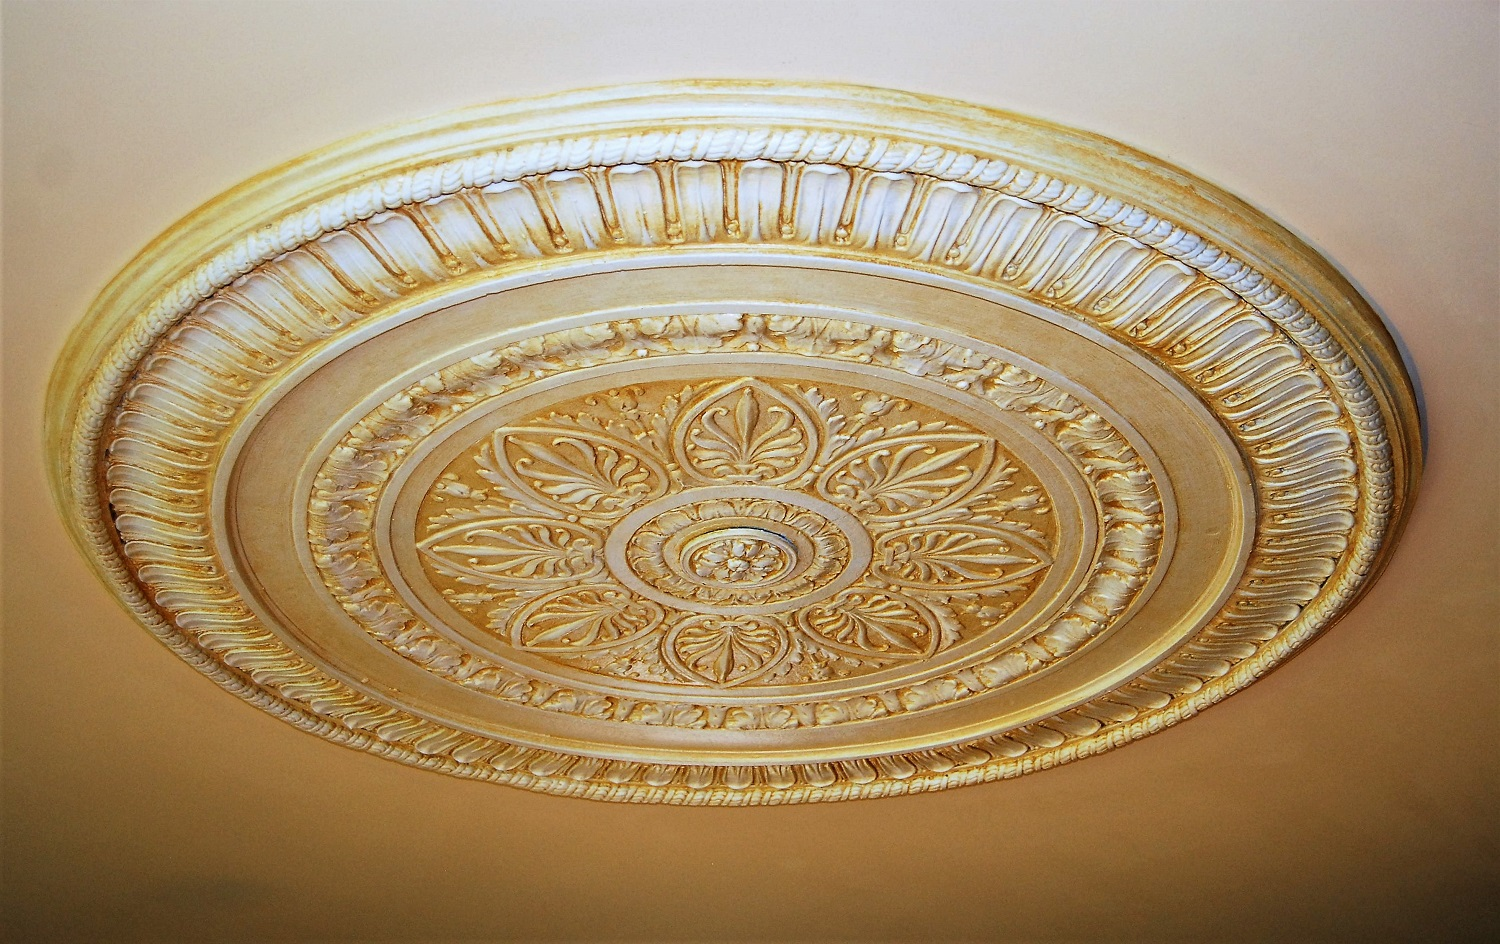 Ceiling Medalion